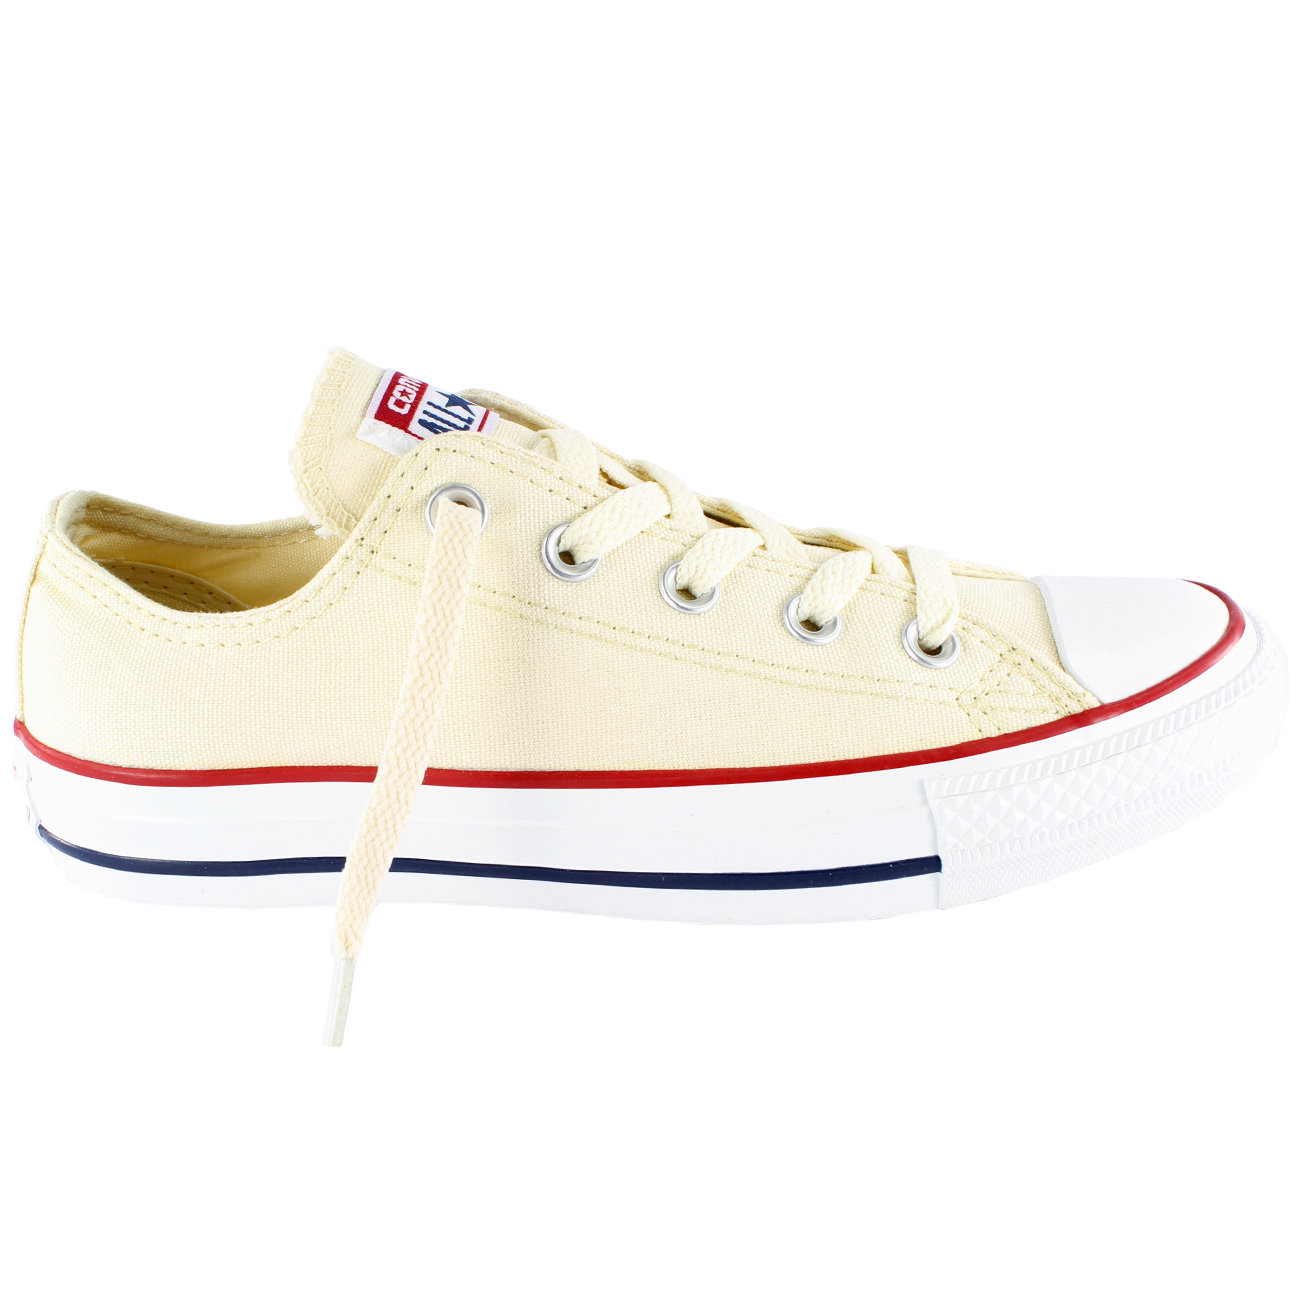 Womens Converse All Star Ox Low Chuck Taylor Chucks Sneaker Trainer UK Sizes 3 9 | eBay